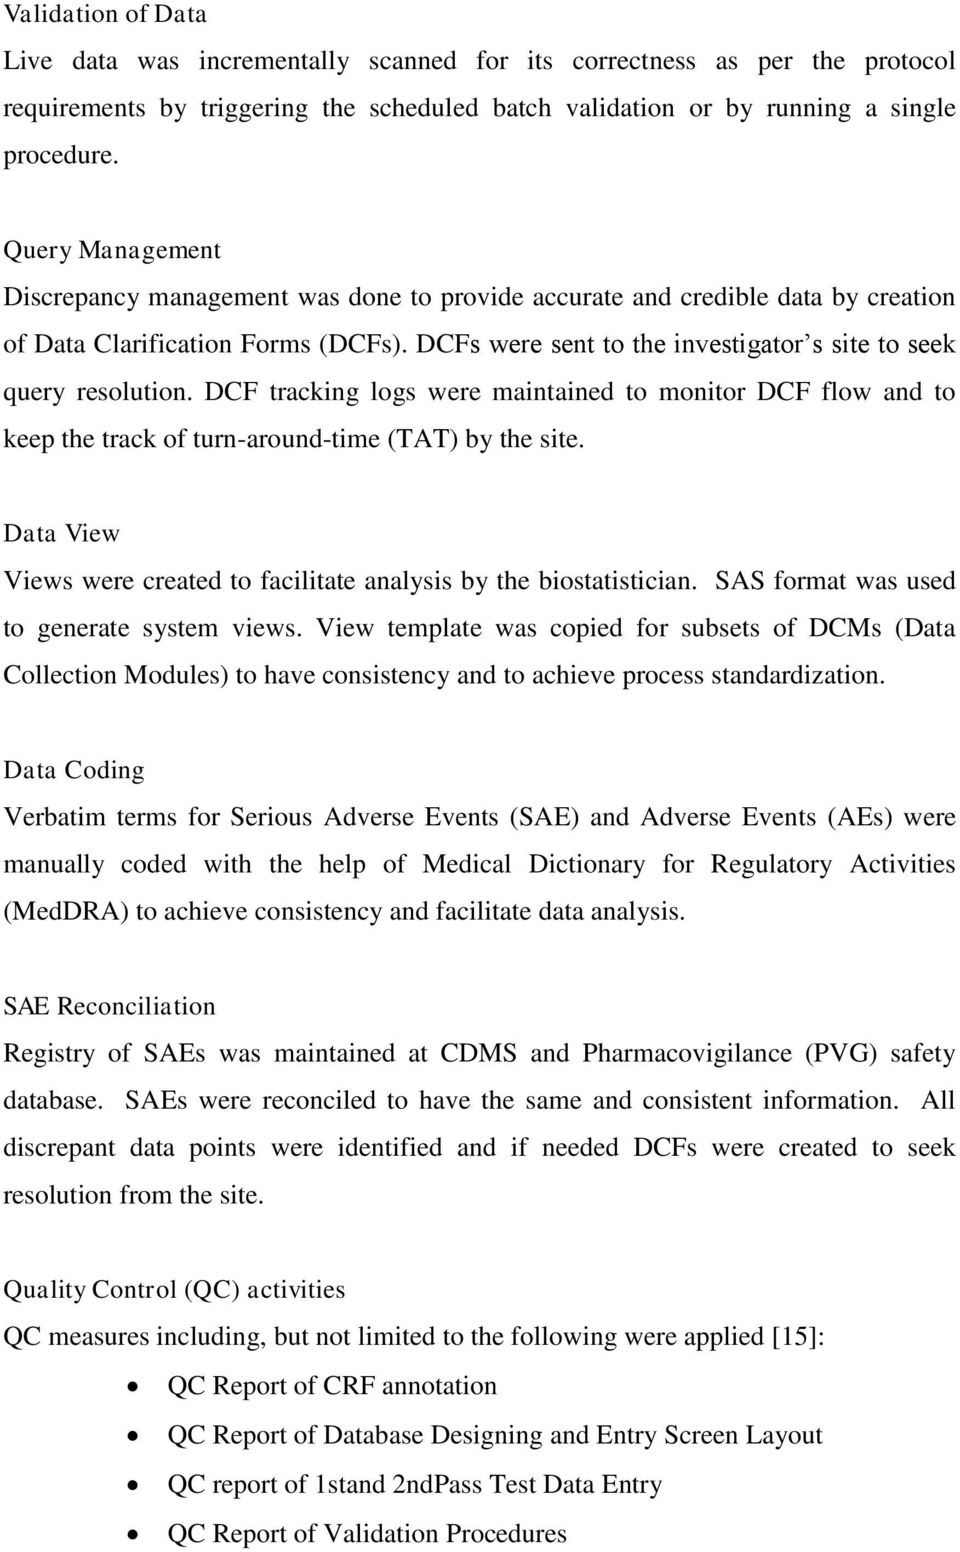 Clinical Data Management Cdm Process Standardization For Vaccine